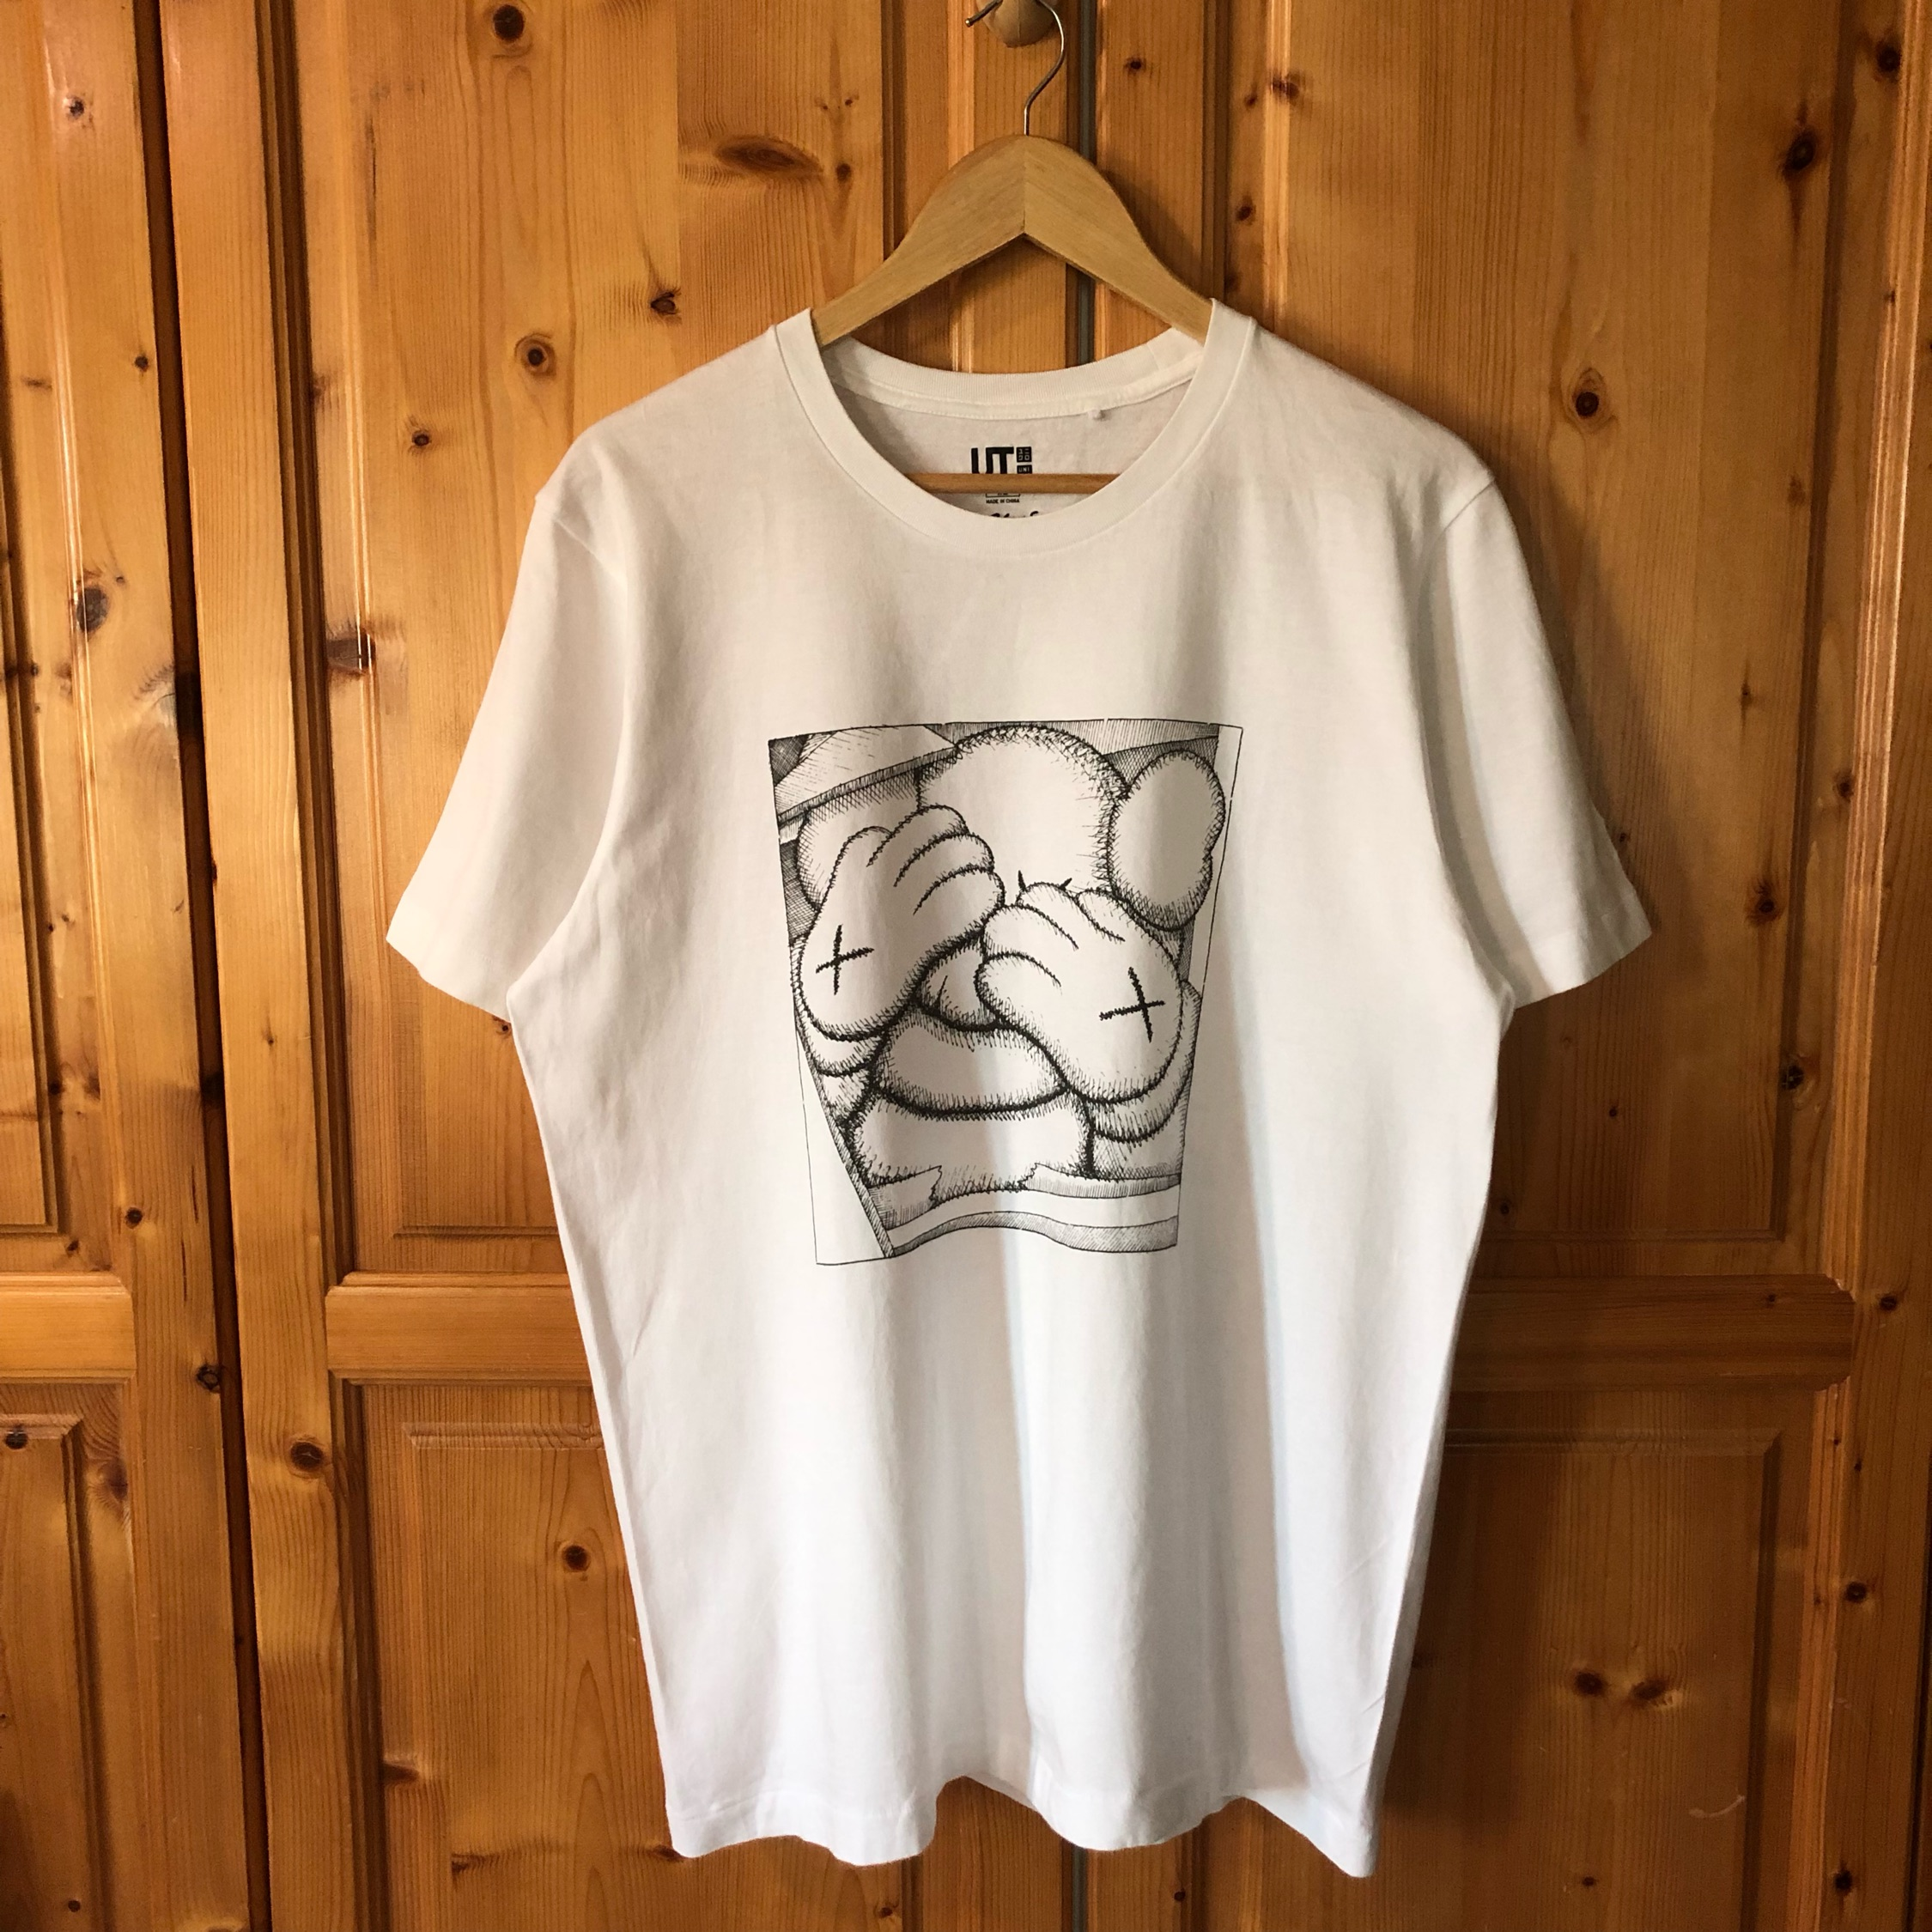 Uniqlo Kaws Hands Tee